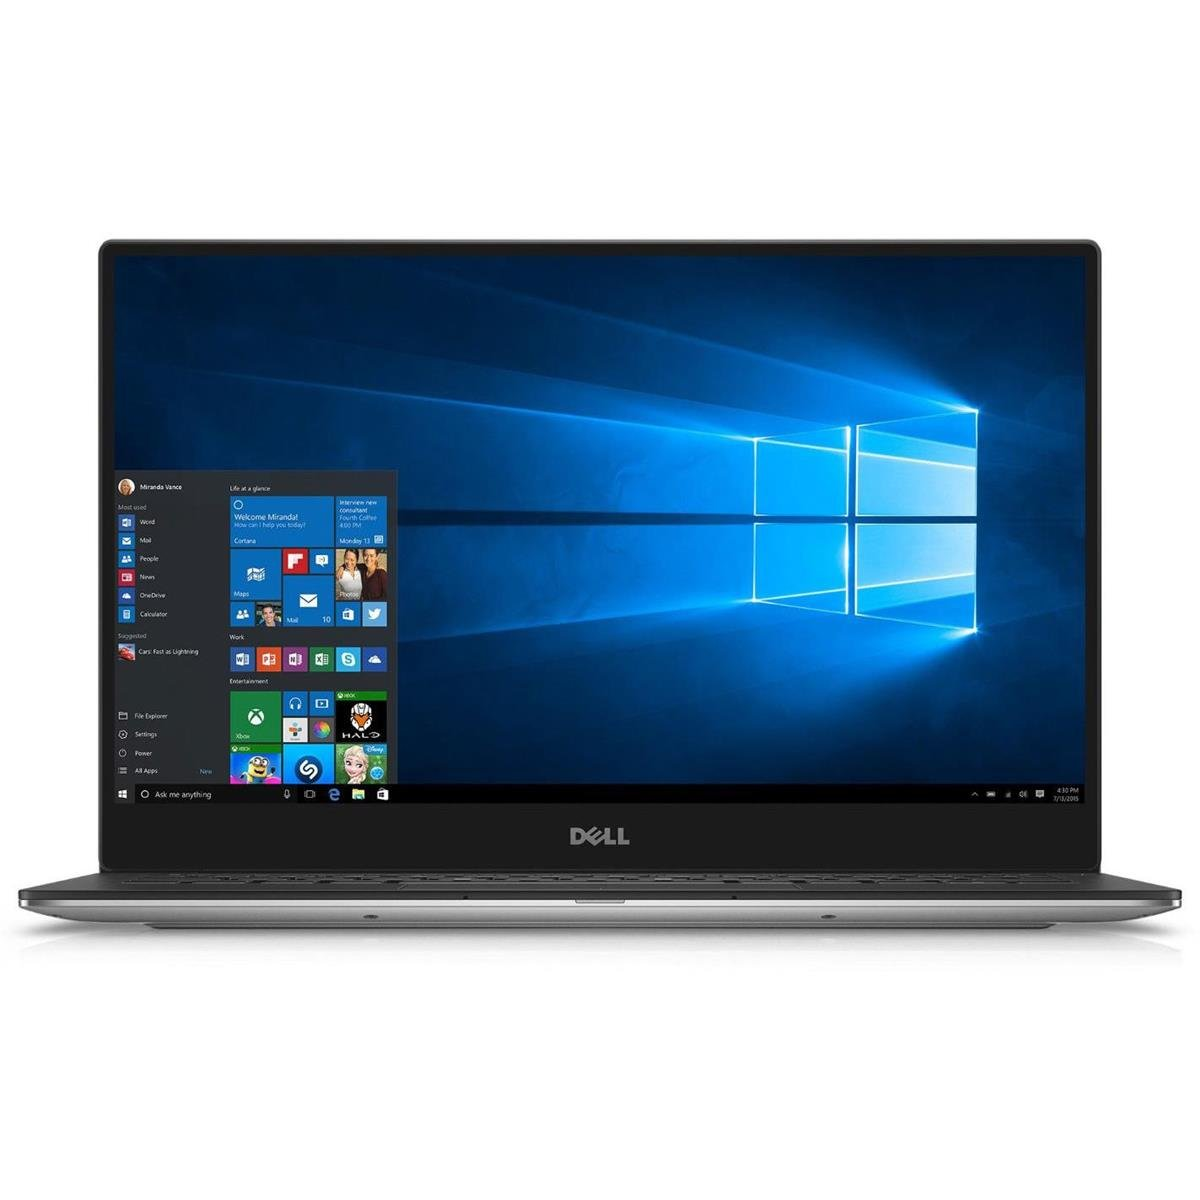 Dell XPS 13 13.3'' QHD+ (3200 x 1800) Touchscreen High Performance Ultraportable Laptop, Intel Core i5-6200u, 8GB LPDDR3, 256GB SSD, Thunderbolt 3, 802.11AC, Bluetooth, Up to 11 Hours Battery Life